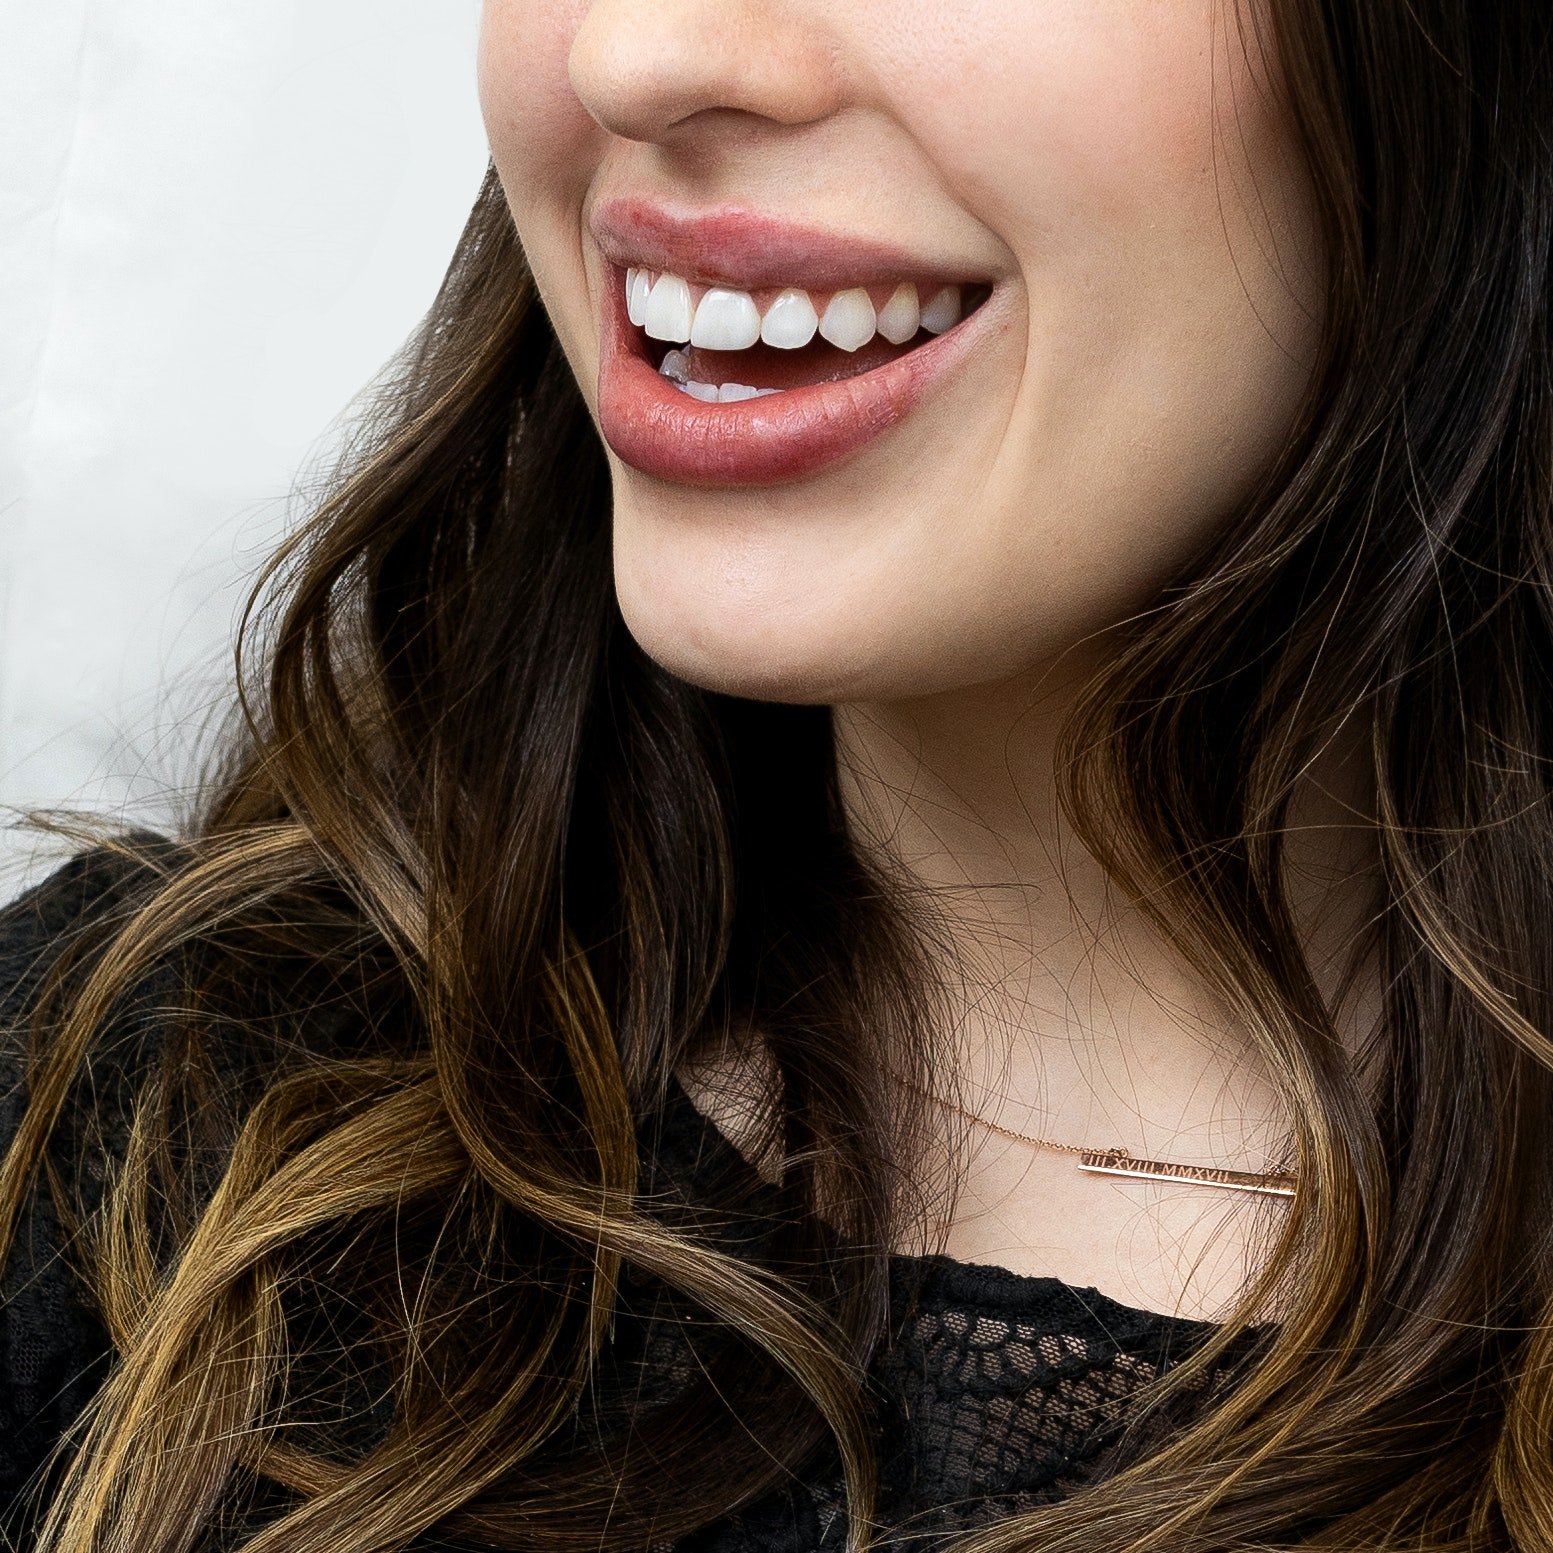 5 Things I Always Tell a New Lip Injection Provider